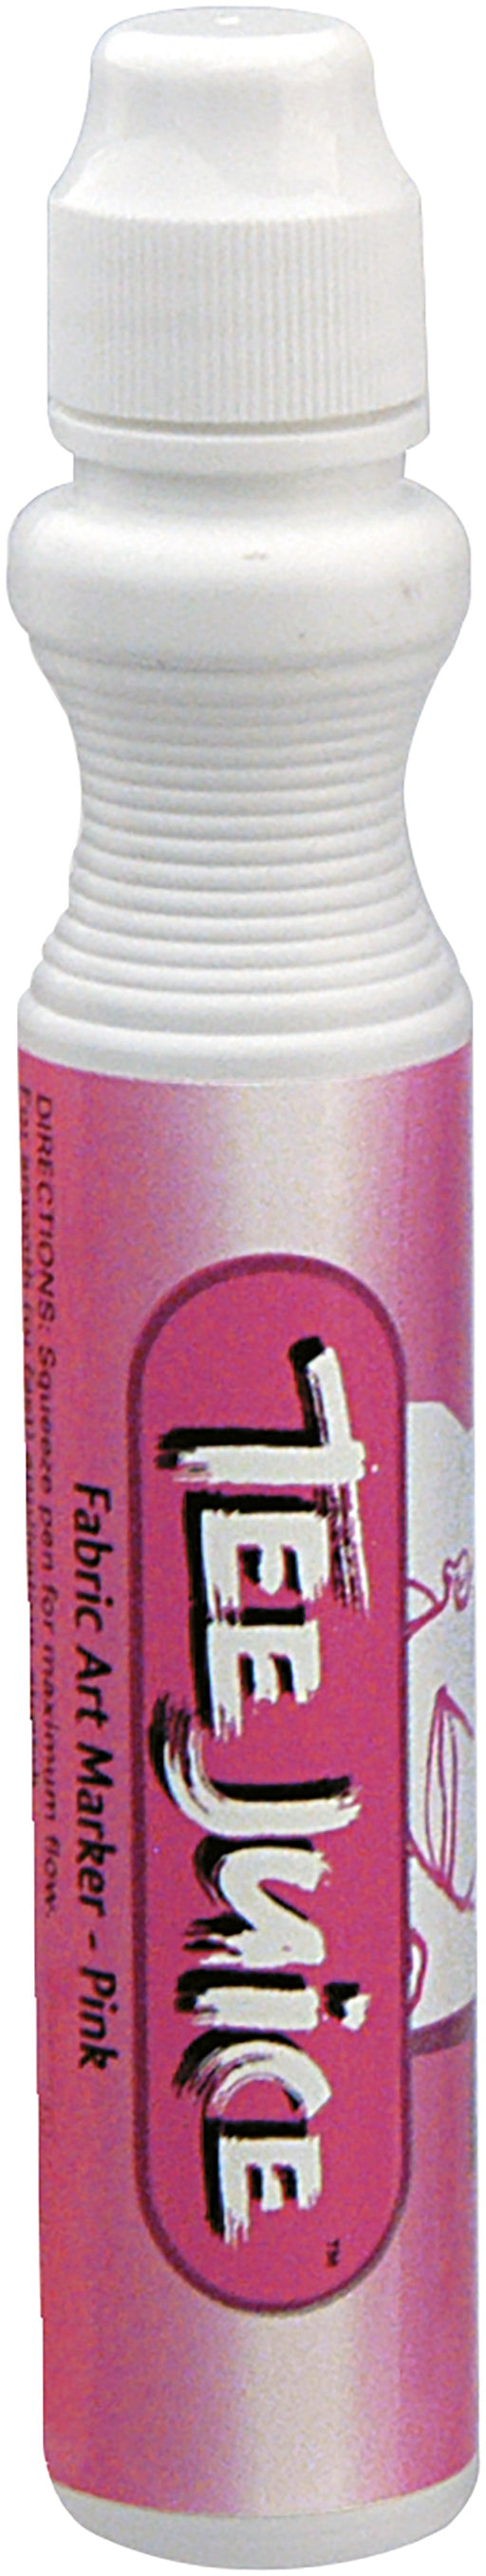 Jacquard Tee Juice Broad Point Fabric Marker Pink